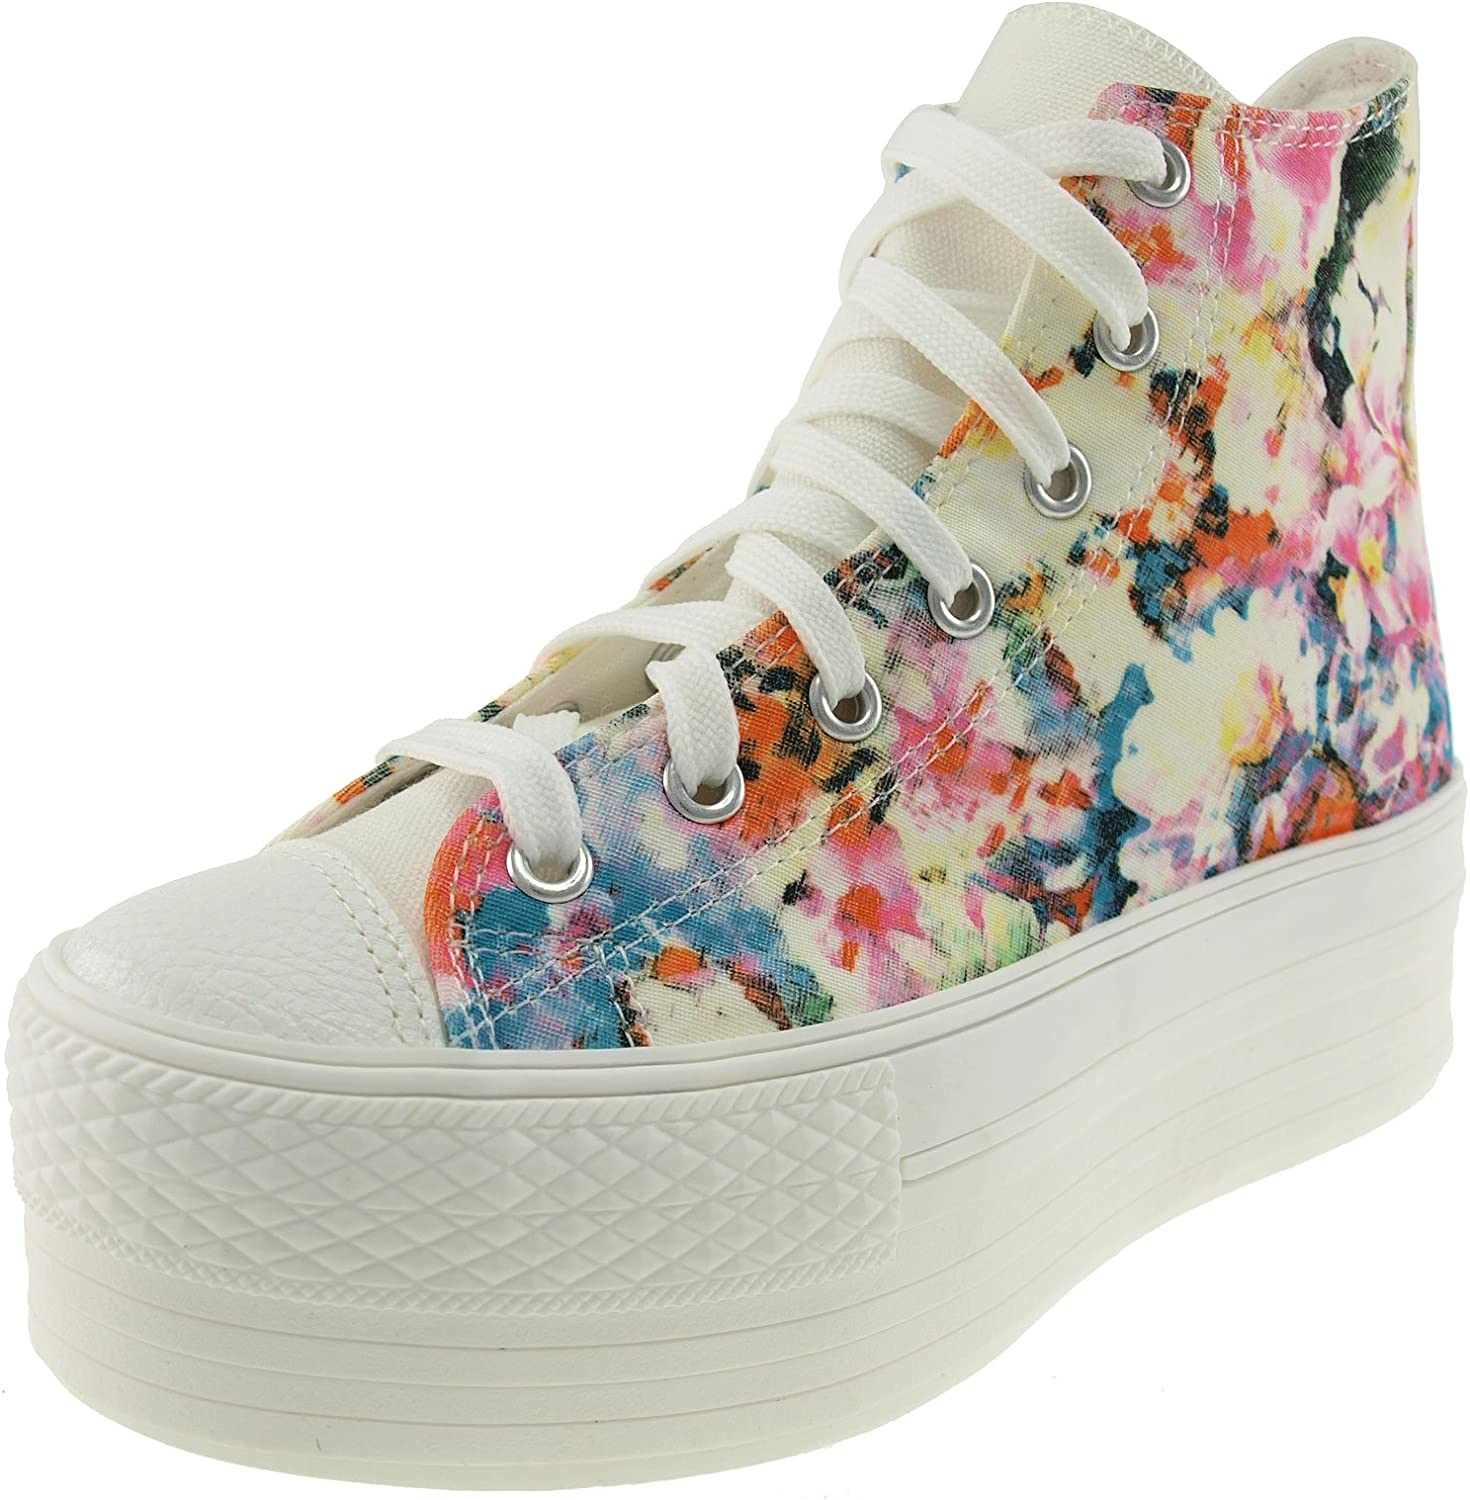 Maxstar Flower Printed High Top Canvas Platform Sneakers shoes